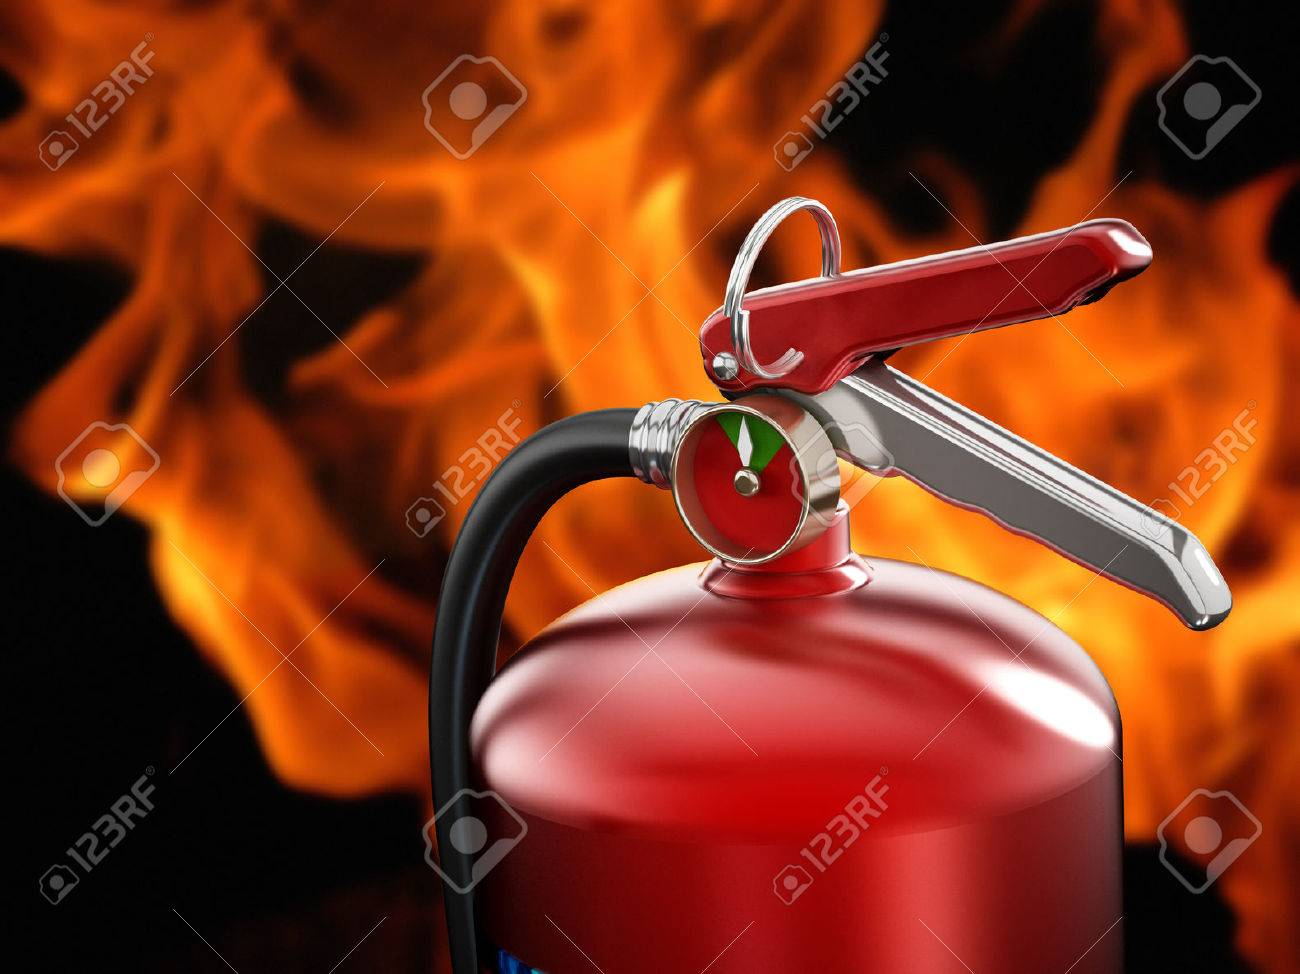 Fire extinguisher on flame background. Stock Photo - 33480449